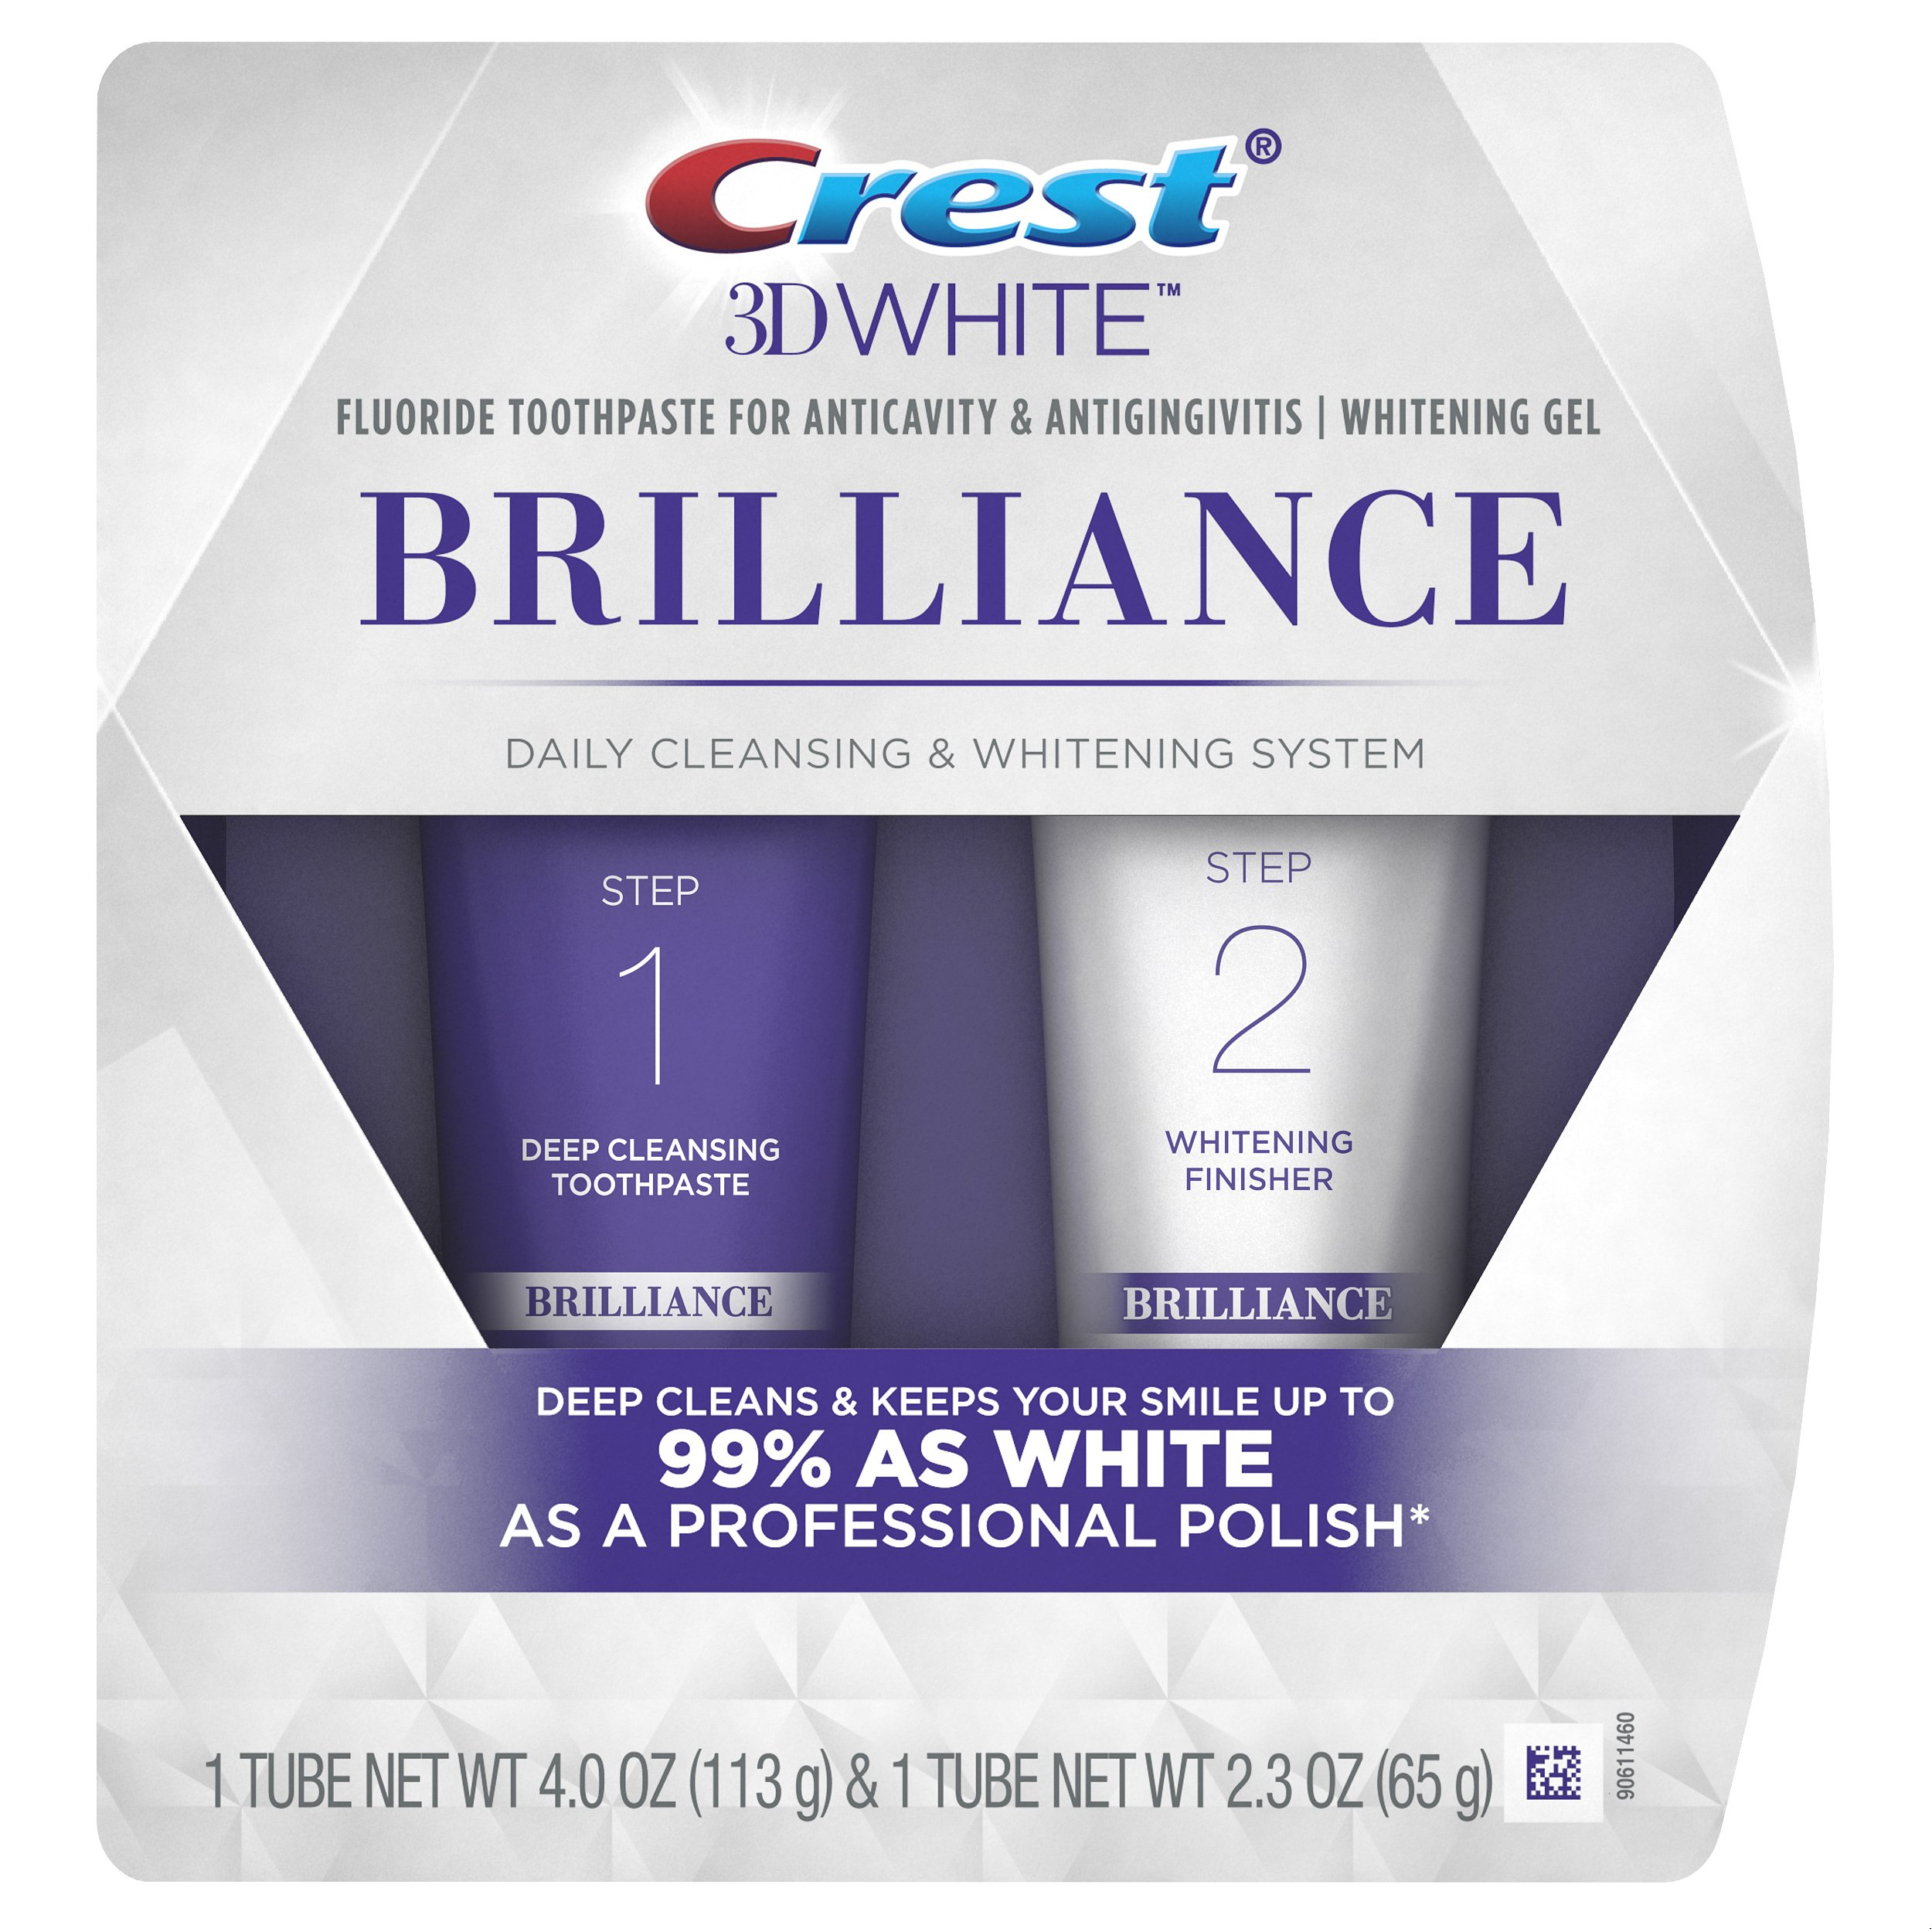 Are crest 3d white strip instructions